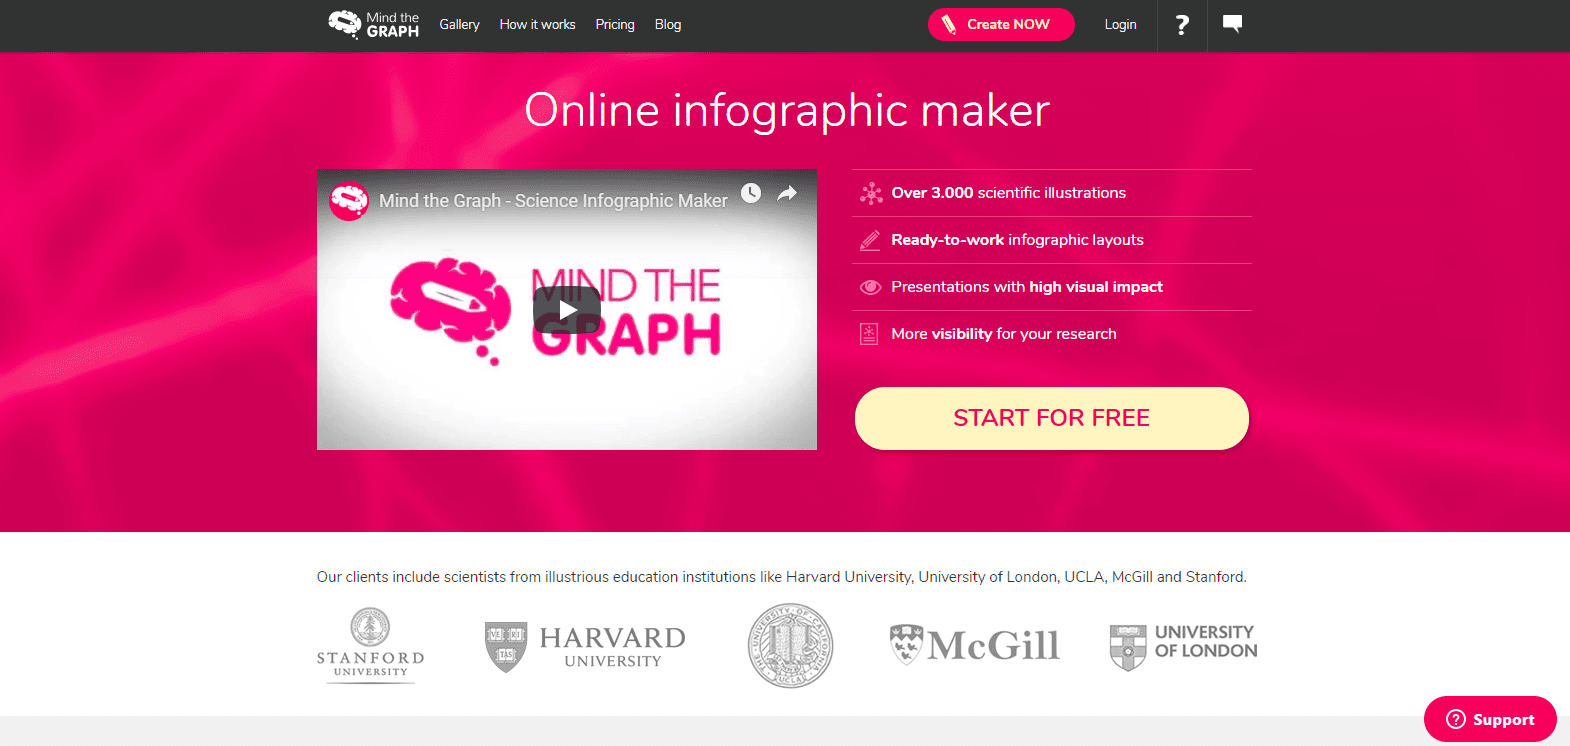 Infographic maker: Mind the Graph